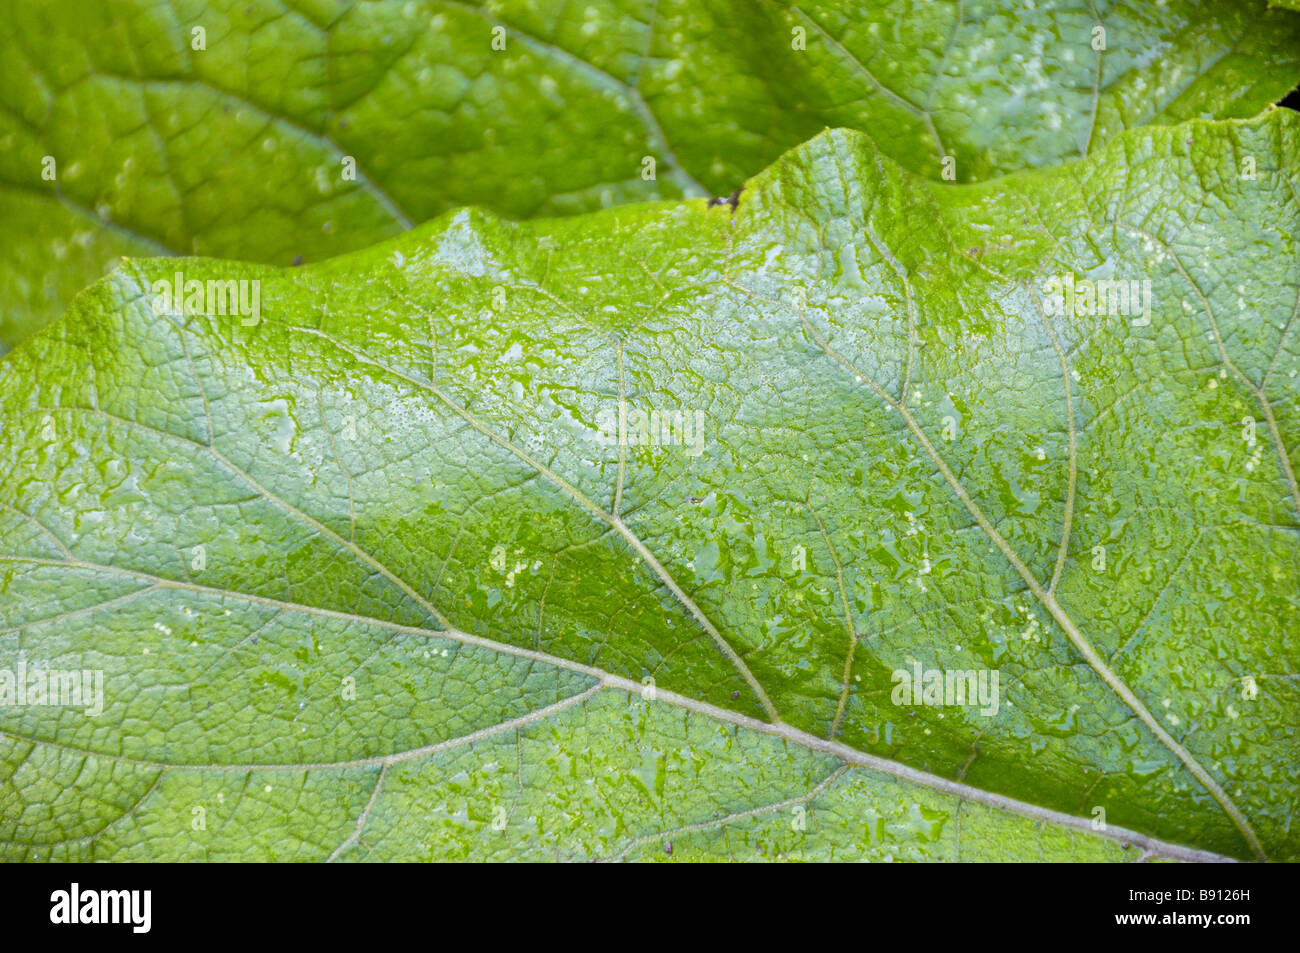 Dewdrops on green leaves - Stock Image